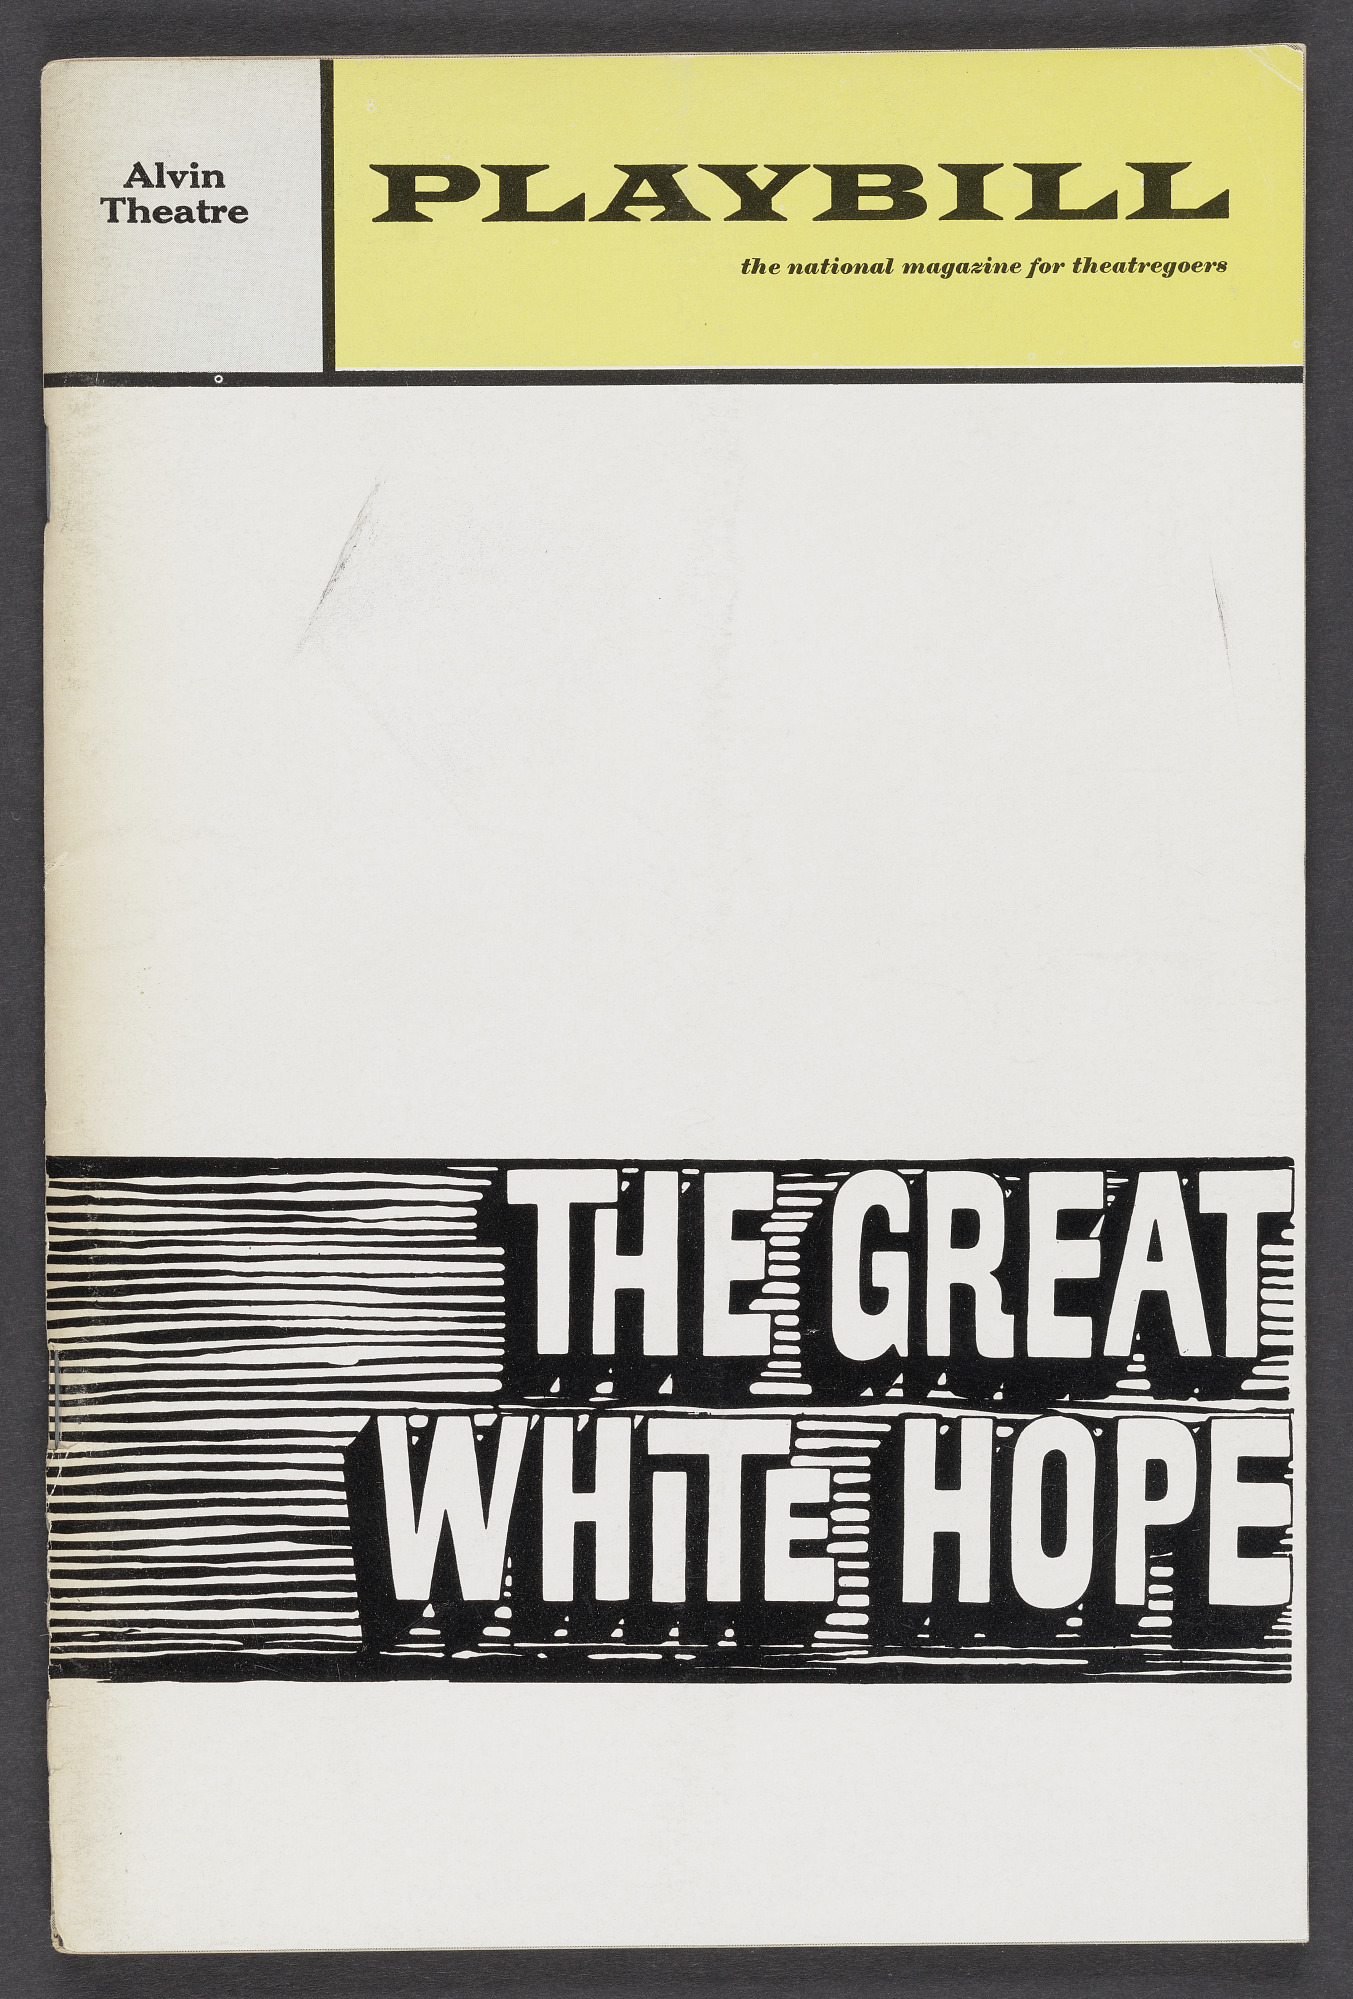 Image for Playbill for The Great White Hope